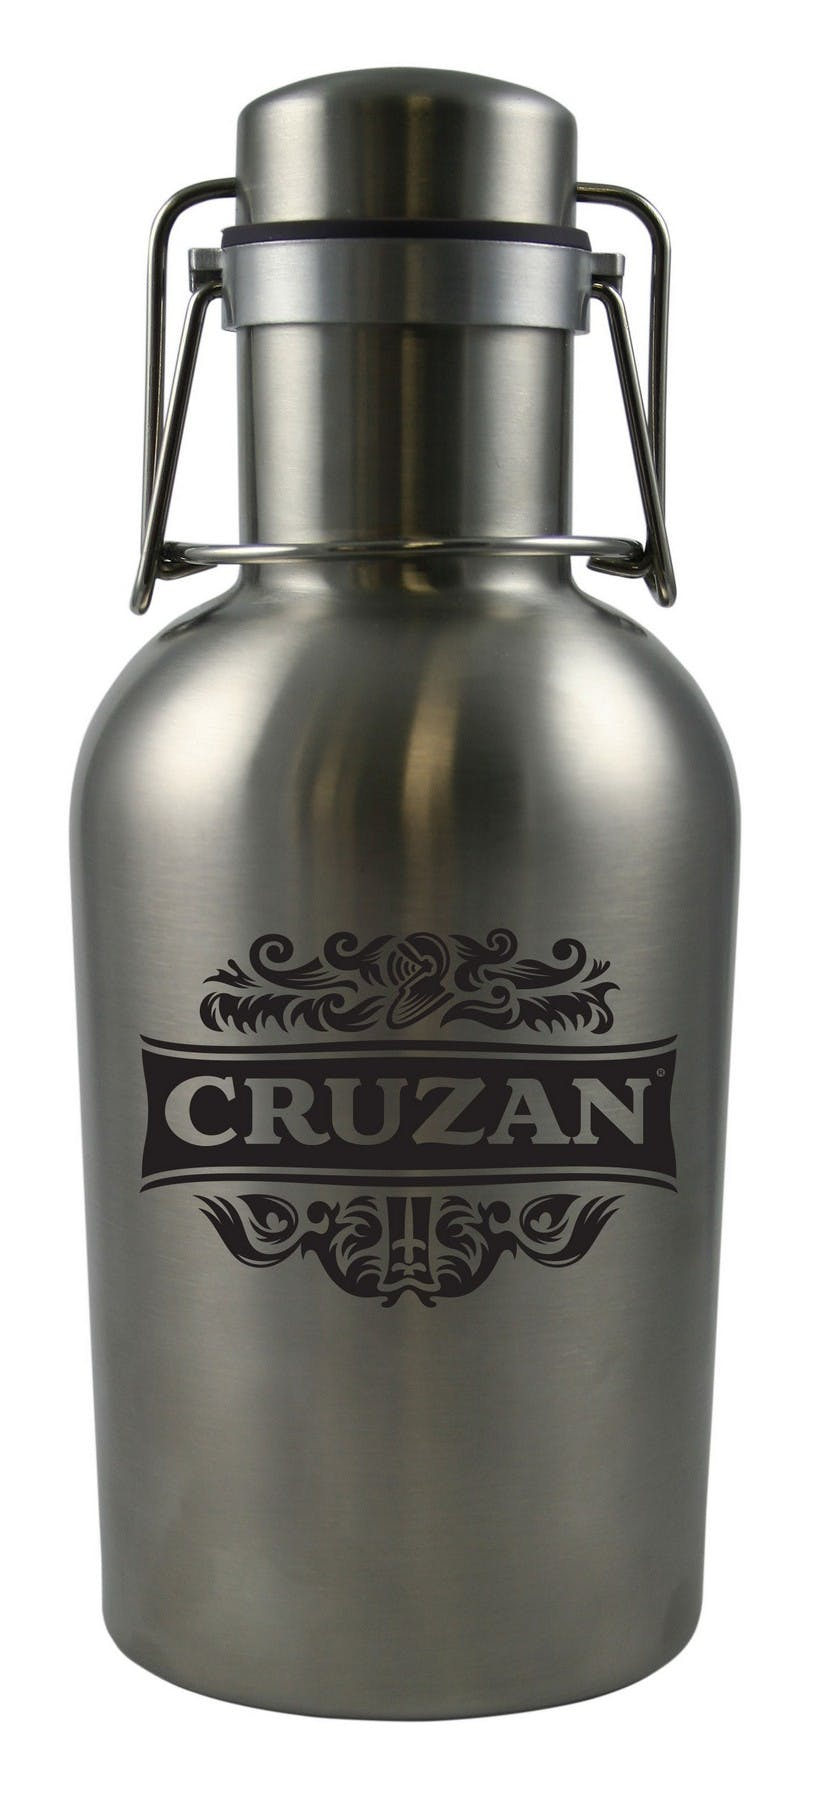 32 Oz. Stainless Steel Growler (Item # JFIHL-JVDWK) Growler sold by InkEasy